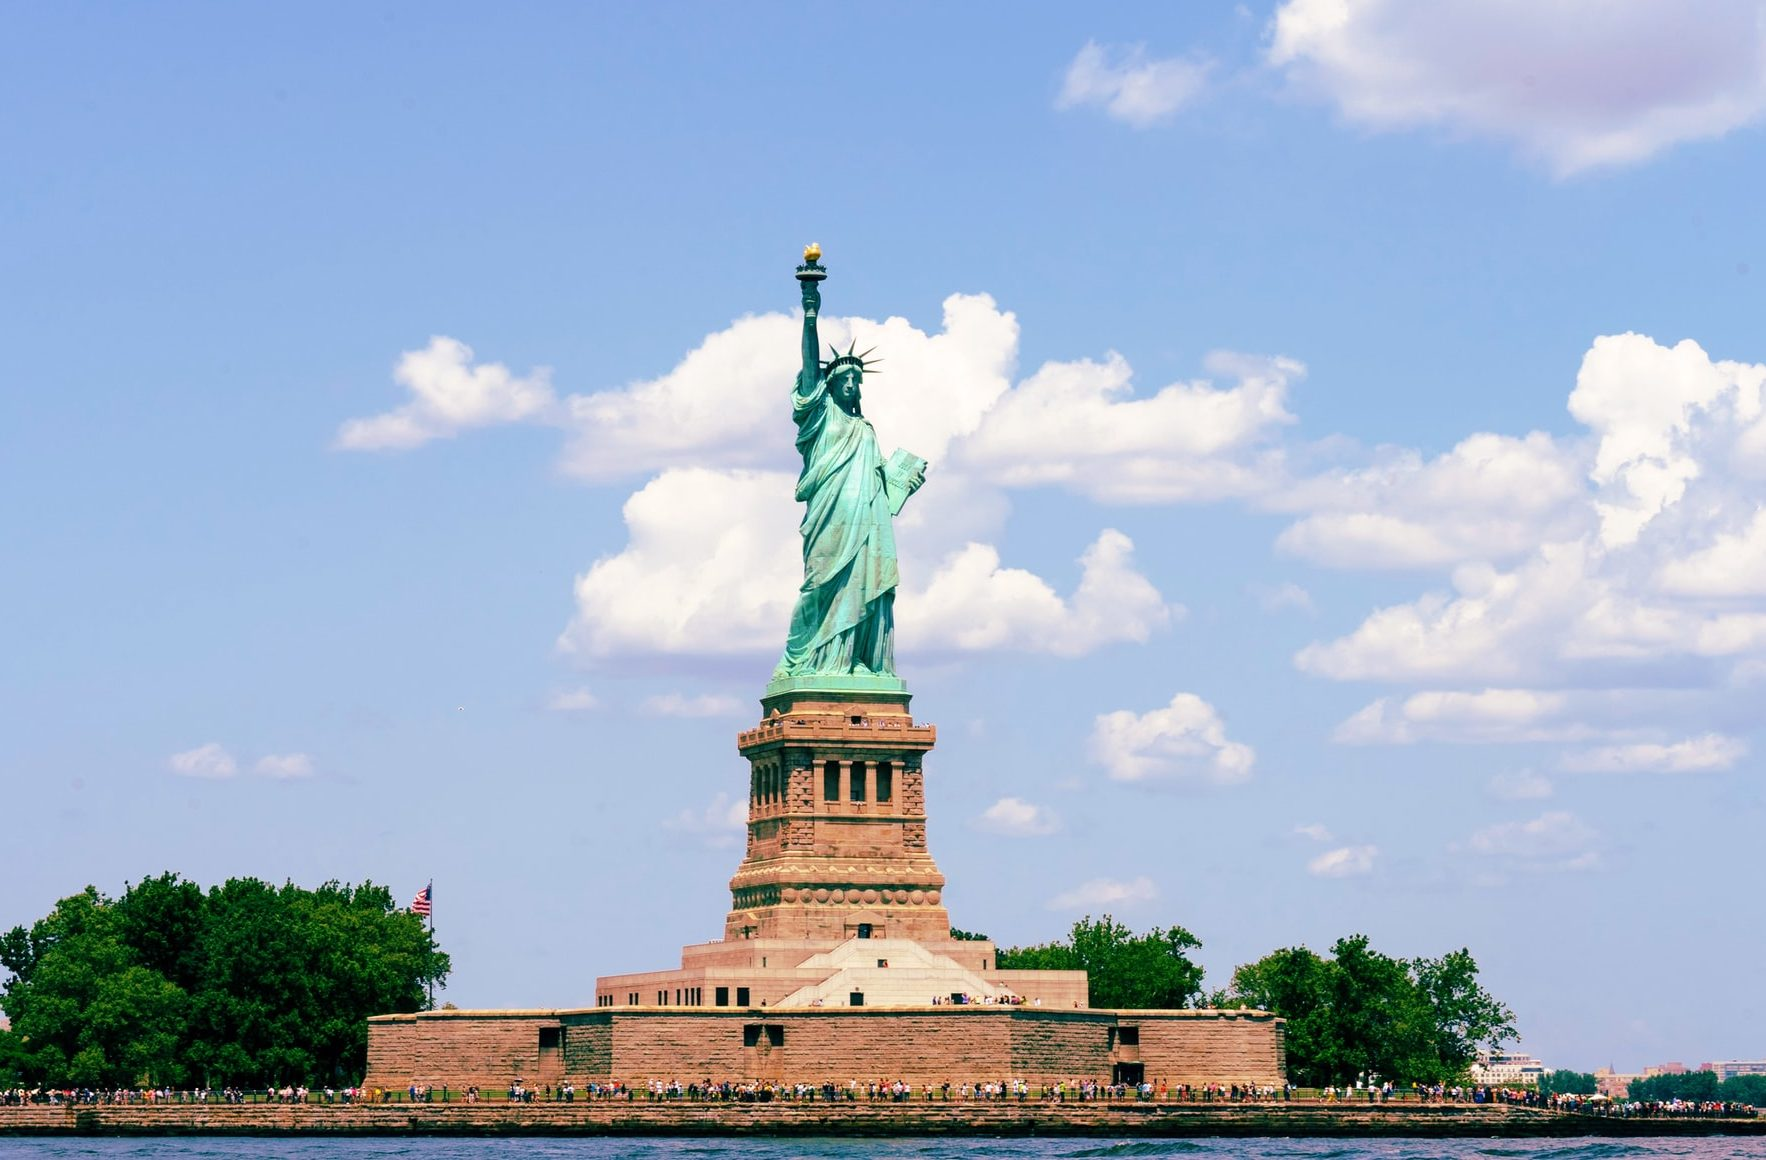 Statue of Liberty on island in NYC